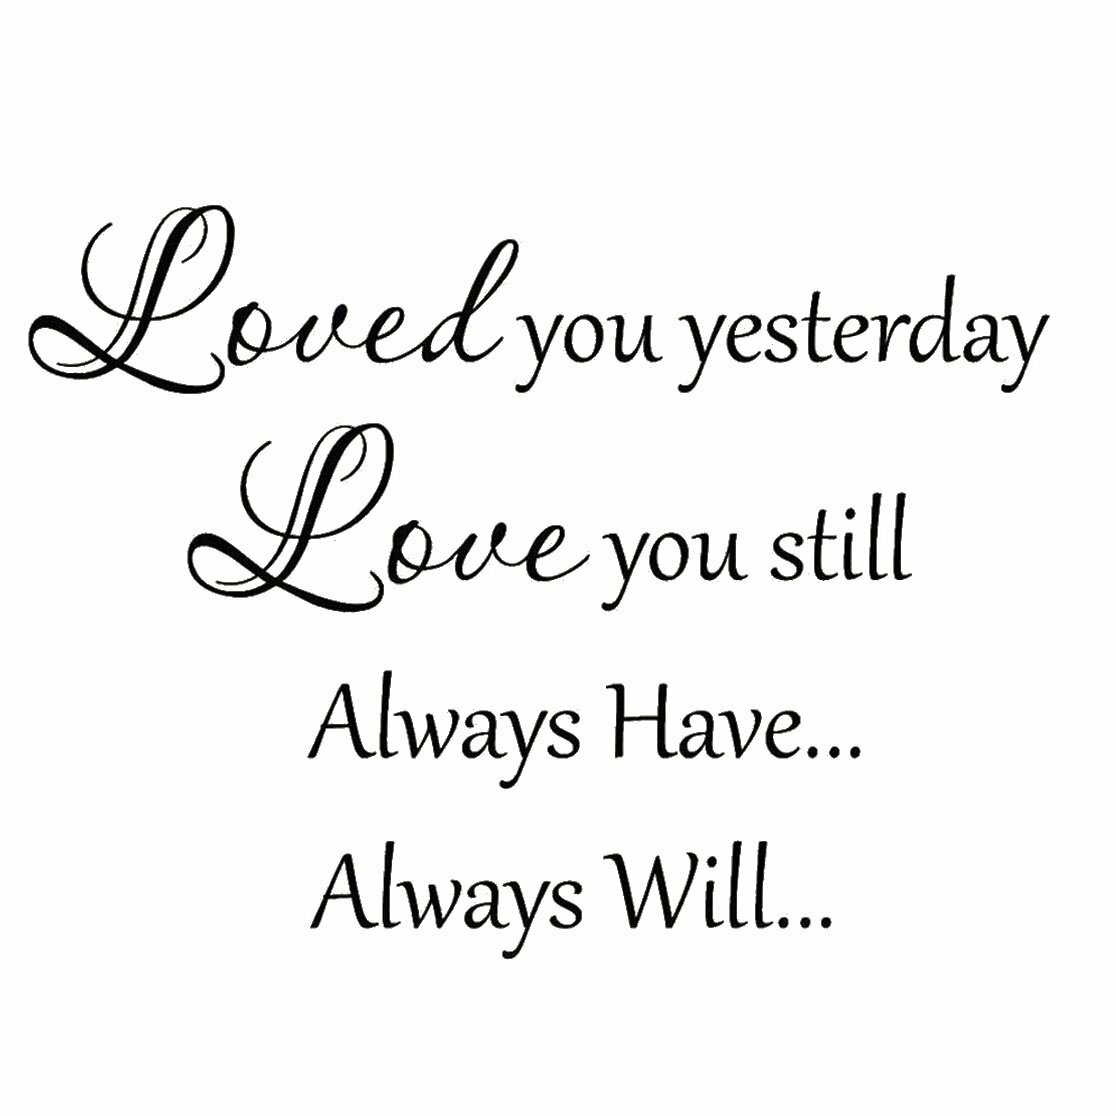 clinton-loved-you-yesterday-love-you-still-always-have-always-will-love-wedding-quotes-wall-decal